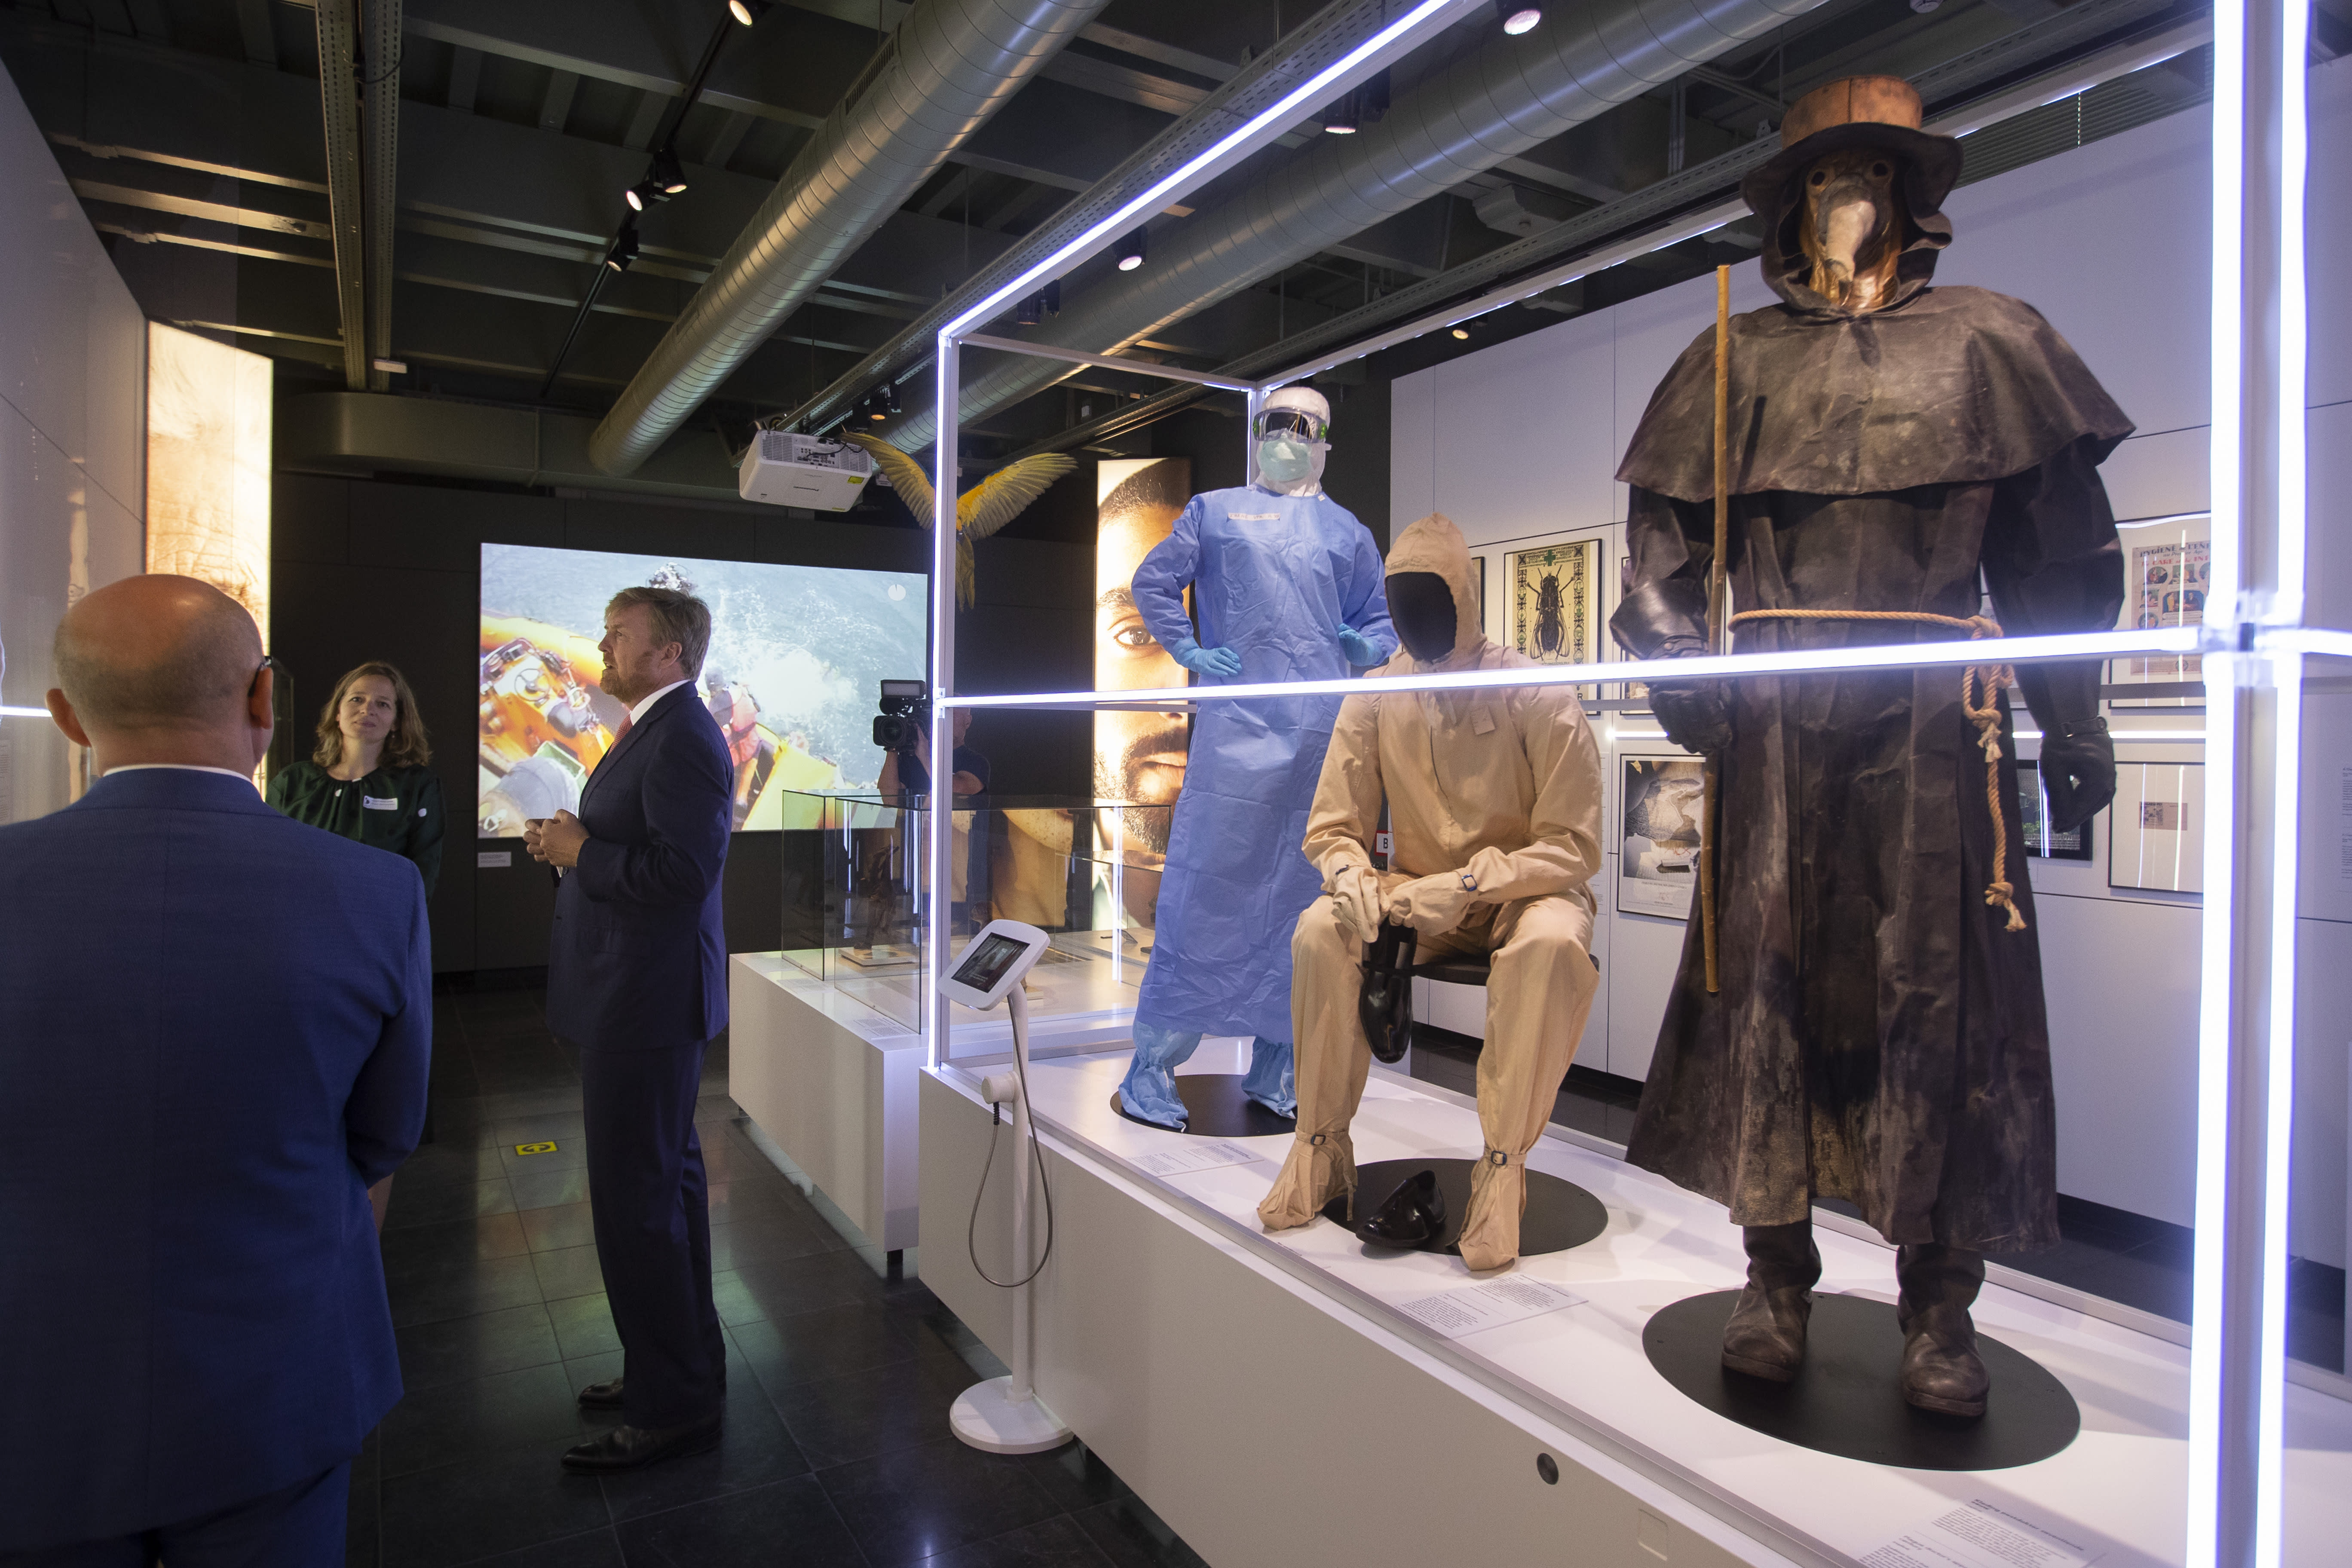 """Dutch King Willem-Alexander, center, curator Mieneke te Hennepe, second left, and director Amito Haarhuis, left, tour the """"Contagious!"""" exhibit at Rijksmuseum Boerhave in Leiden, Netherlands, Thursday, July 16, 2020. The museum finally opened an exhibition Thursday on contagious diseases through the ages after a long delay caused by the disease currently sweeping the world, COVID-19. (AP Photo/Peter Dejong, Pool)"""